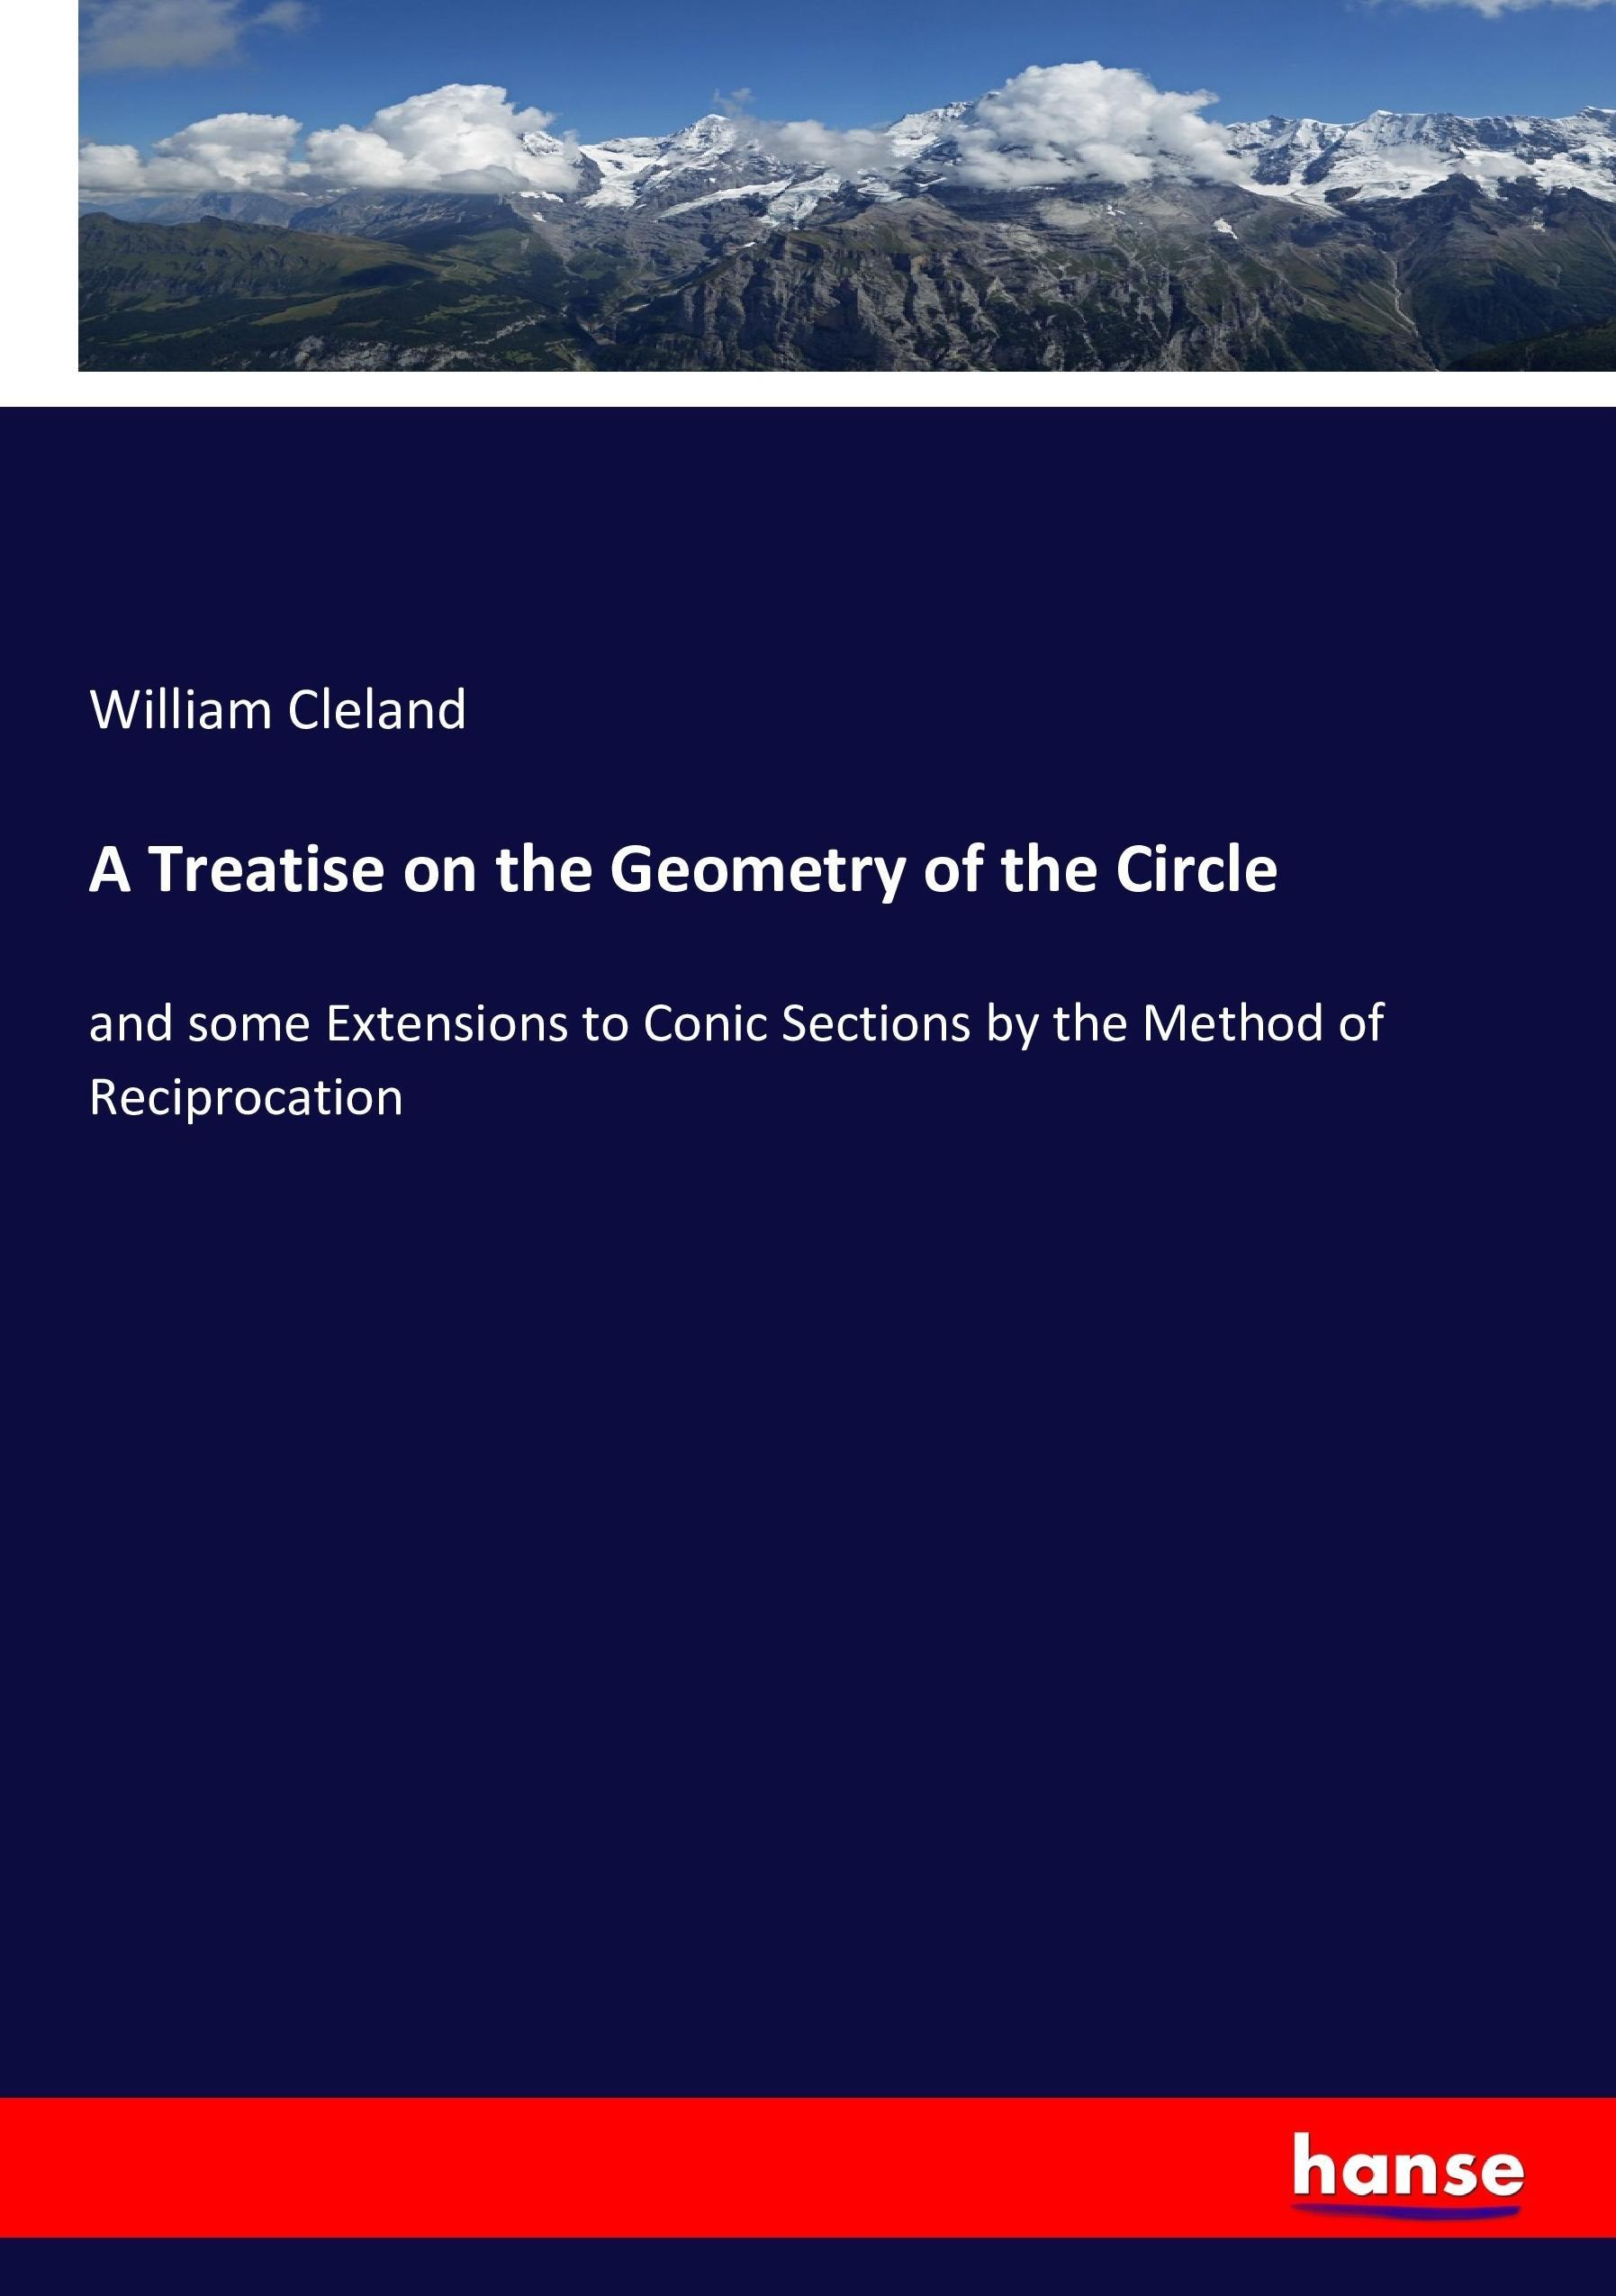 A Treatise on the Geometry of the Circle William Cleland